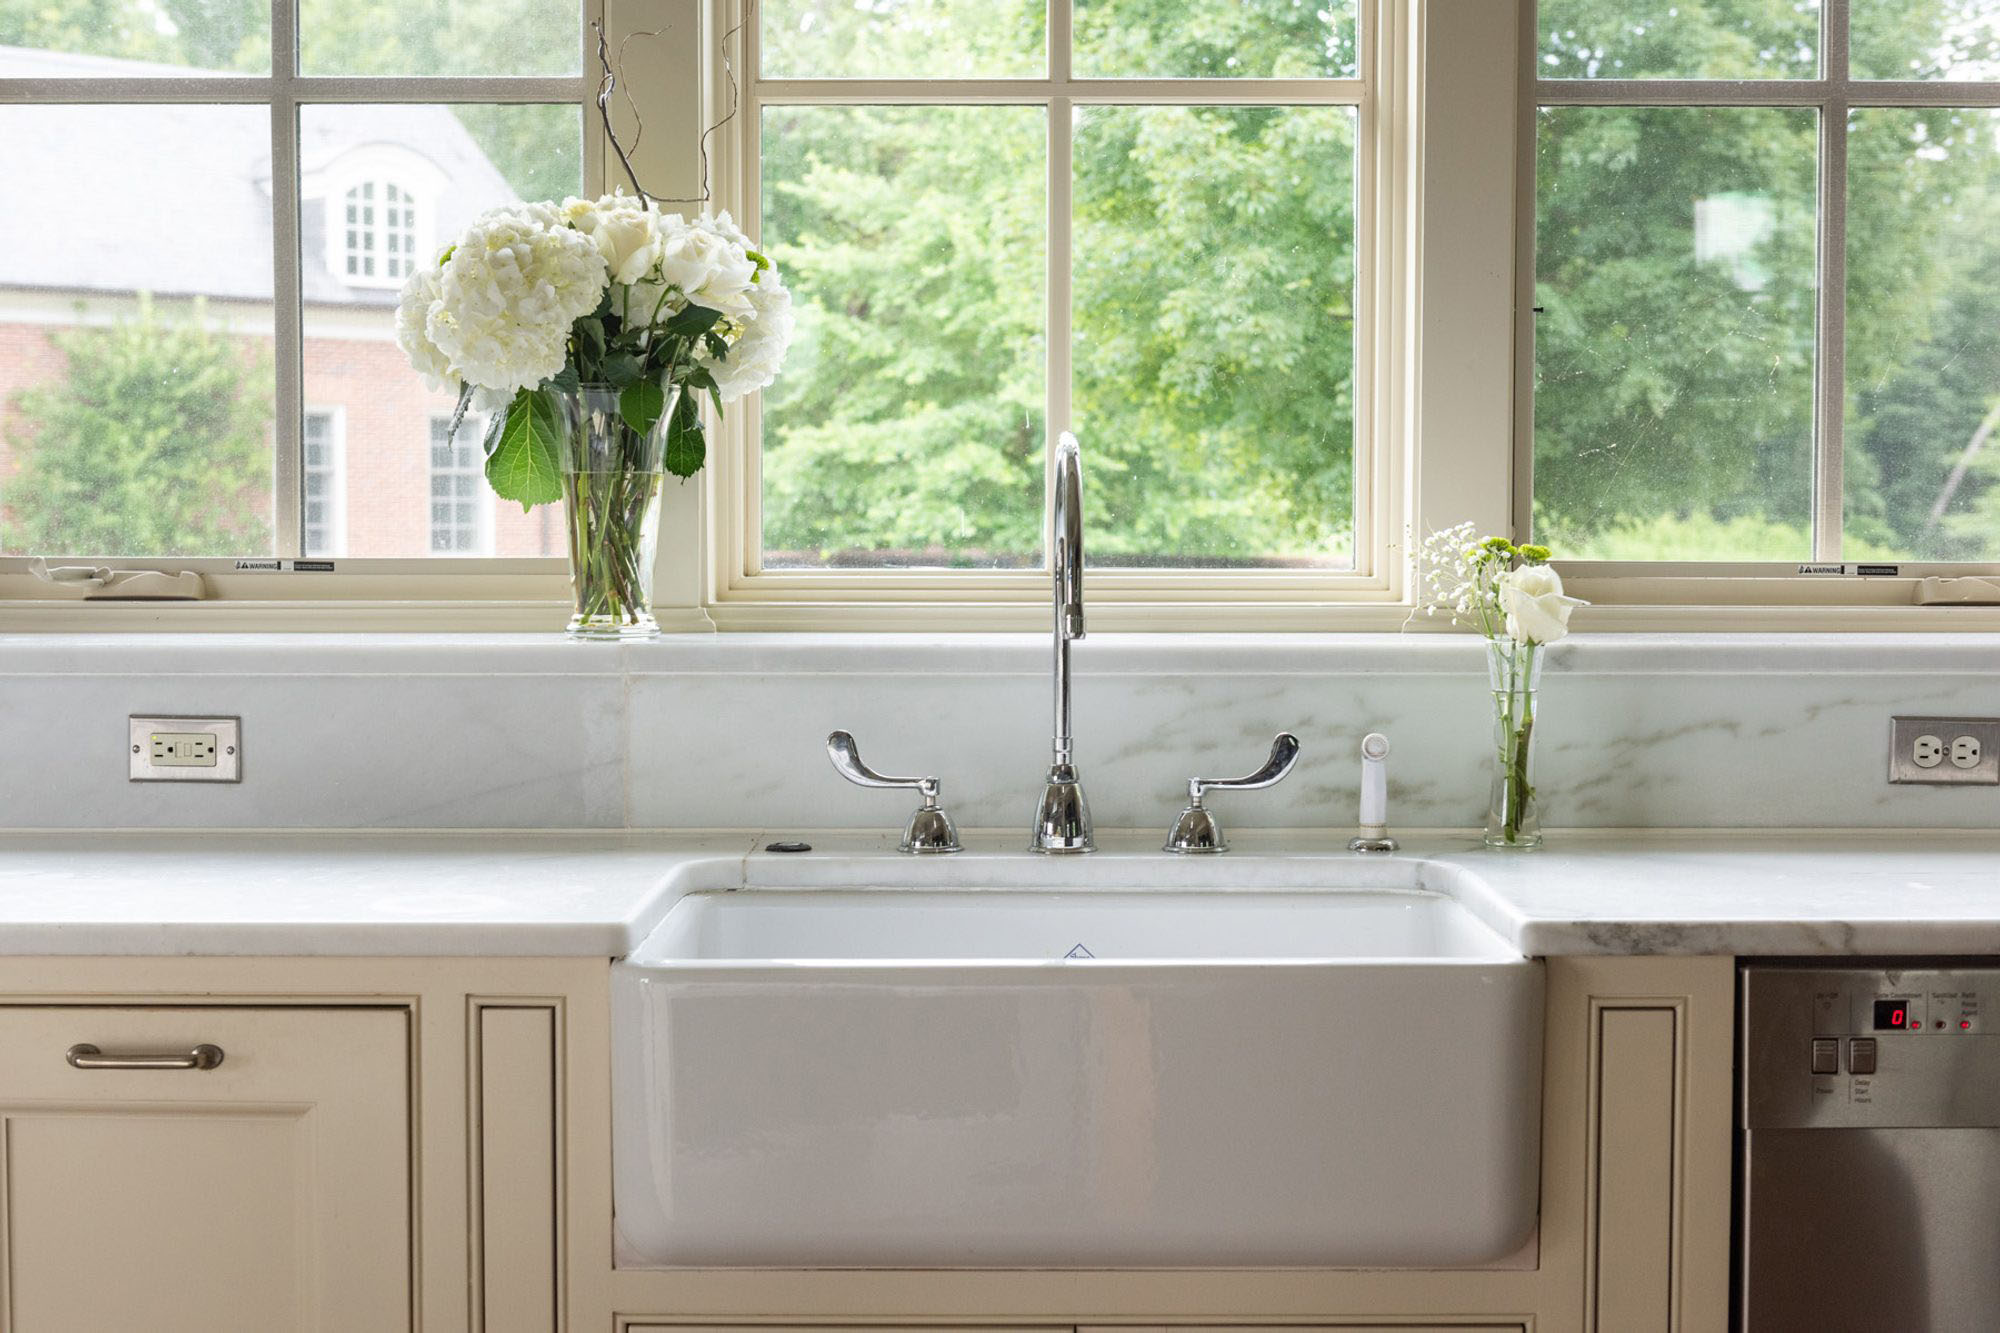 White enamel farmhouse under mount sink with cream cabinets, marble countertops and backsplash.